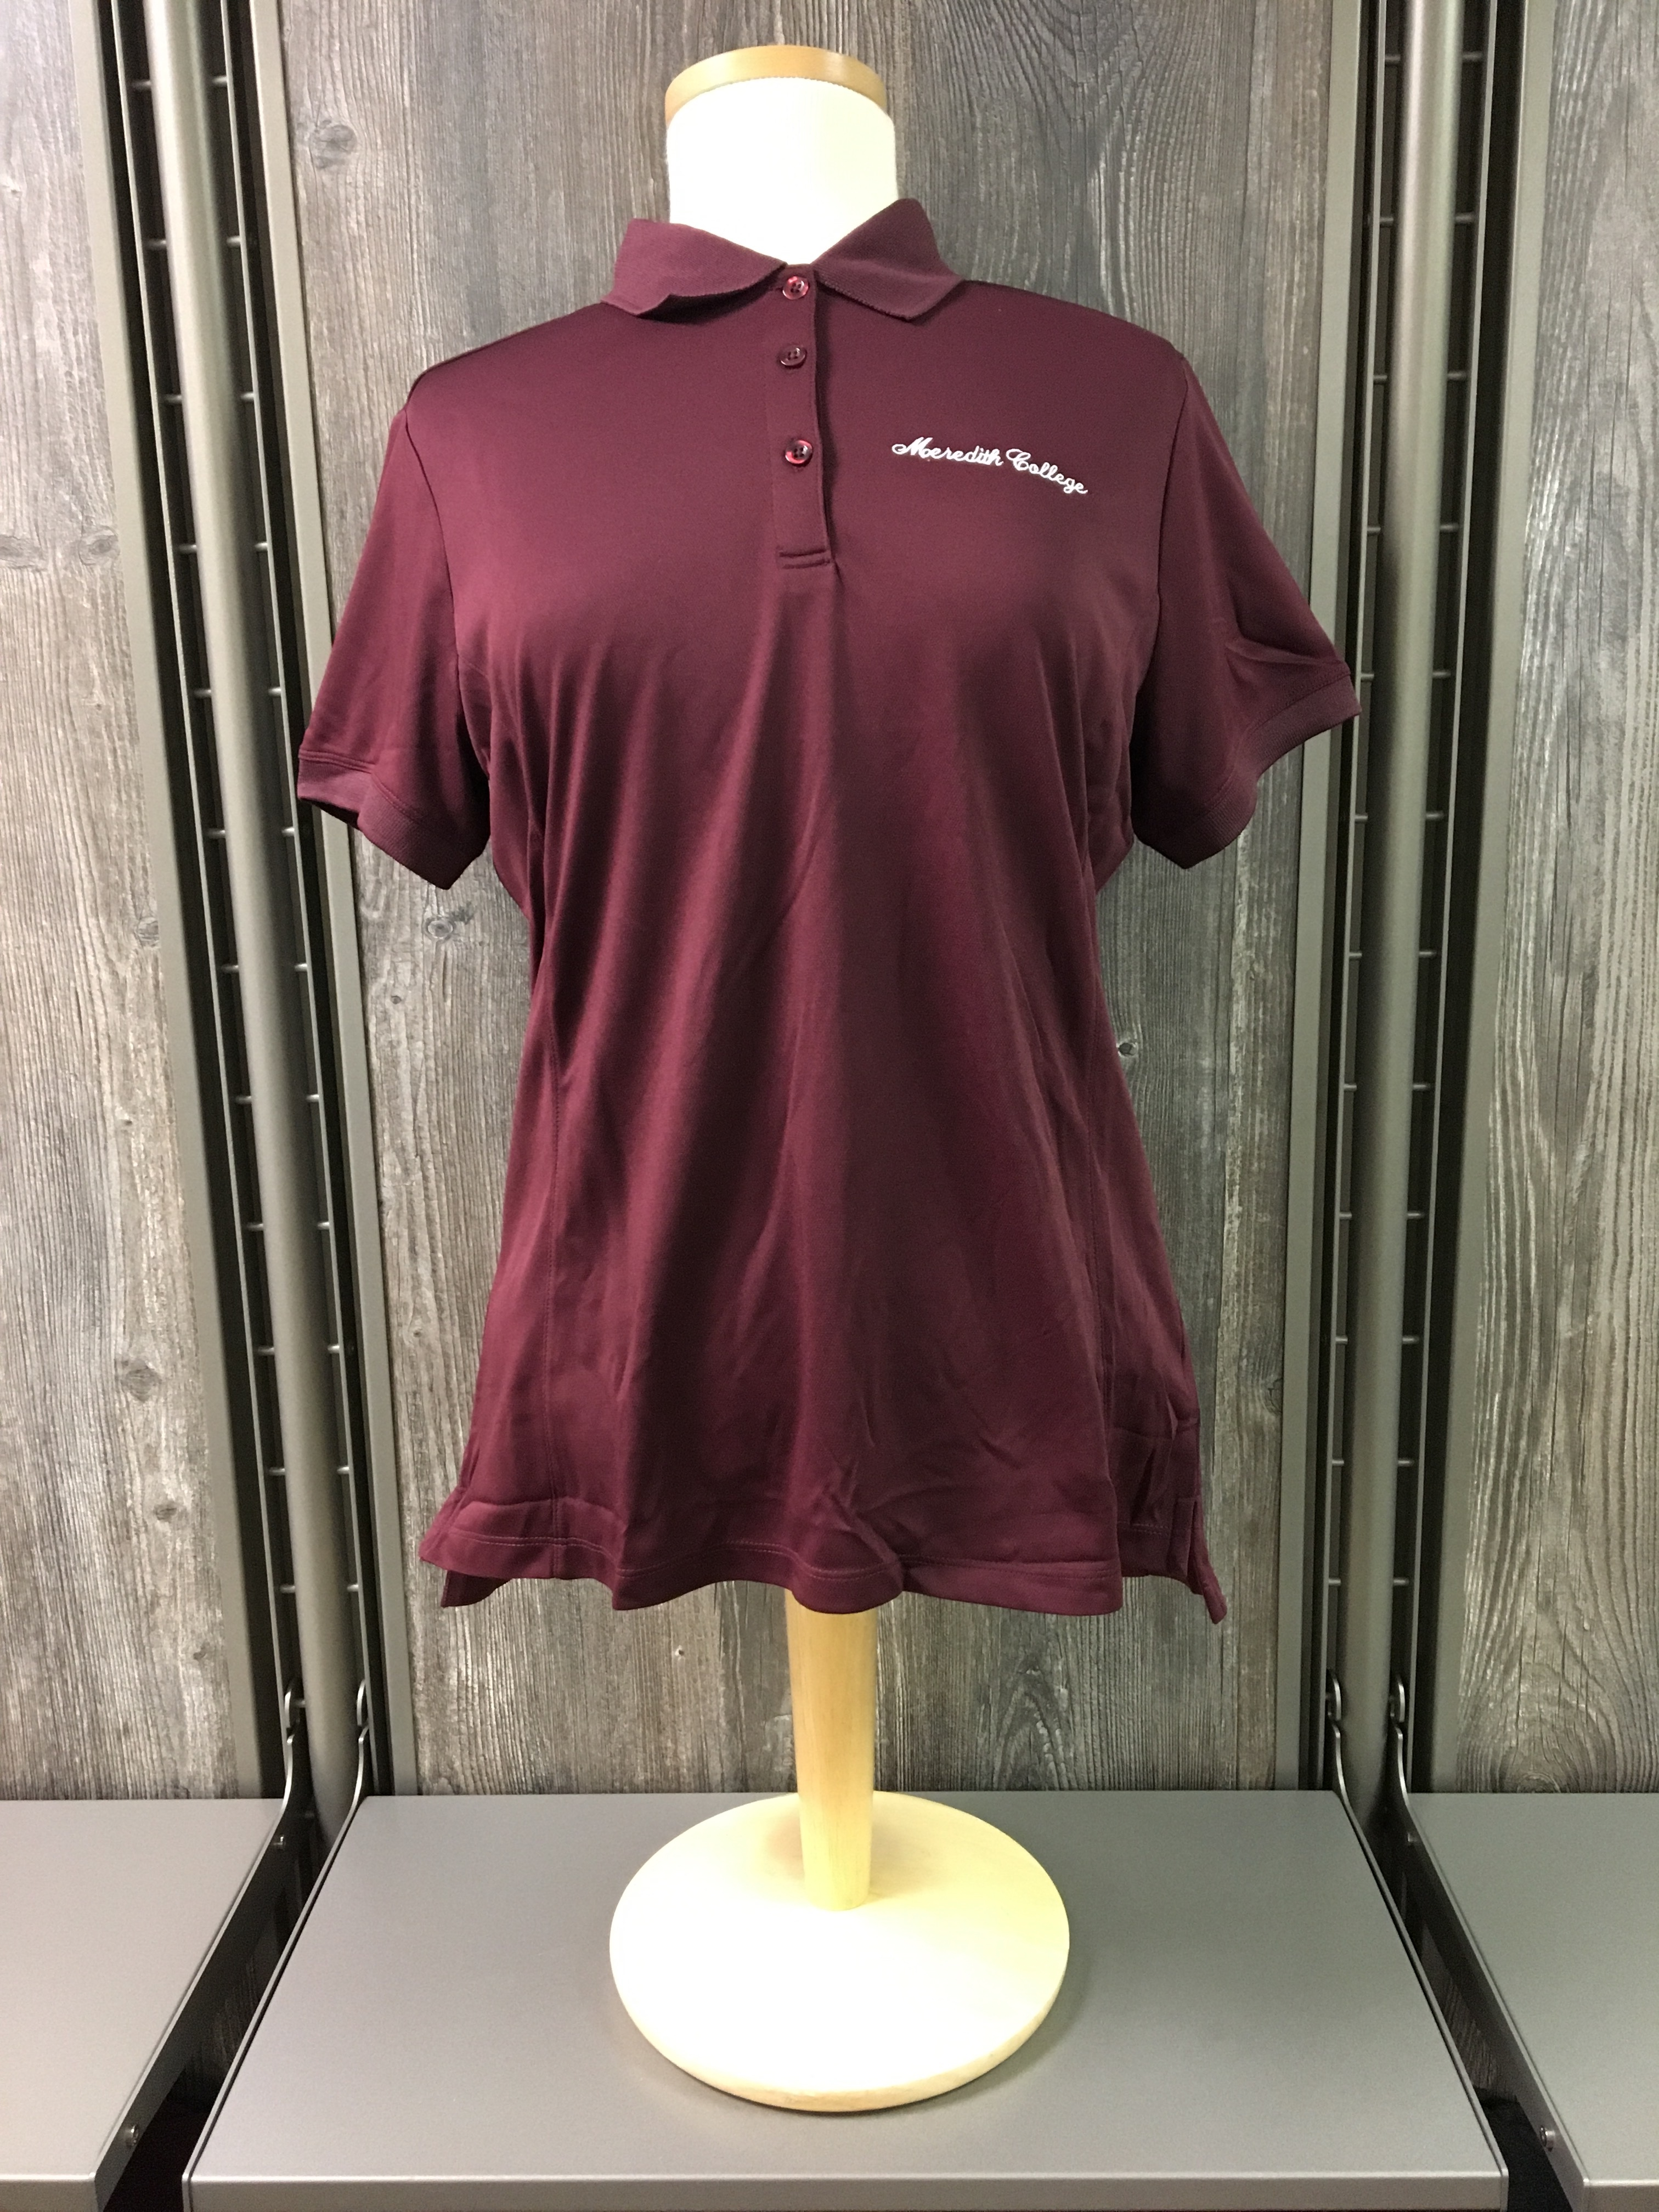 Image for the Women's Oslo Pique Polo Burgundy Cutter & Buck product